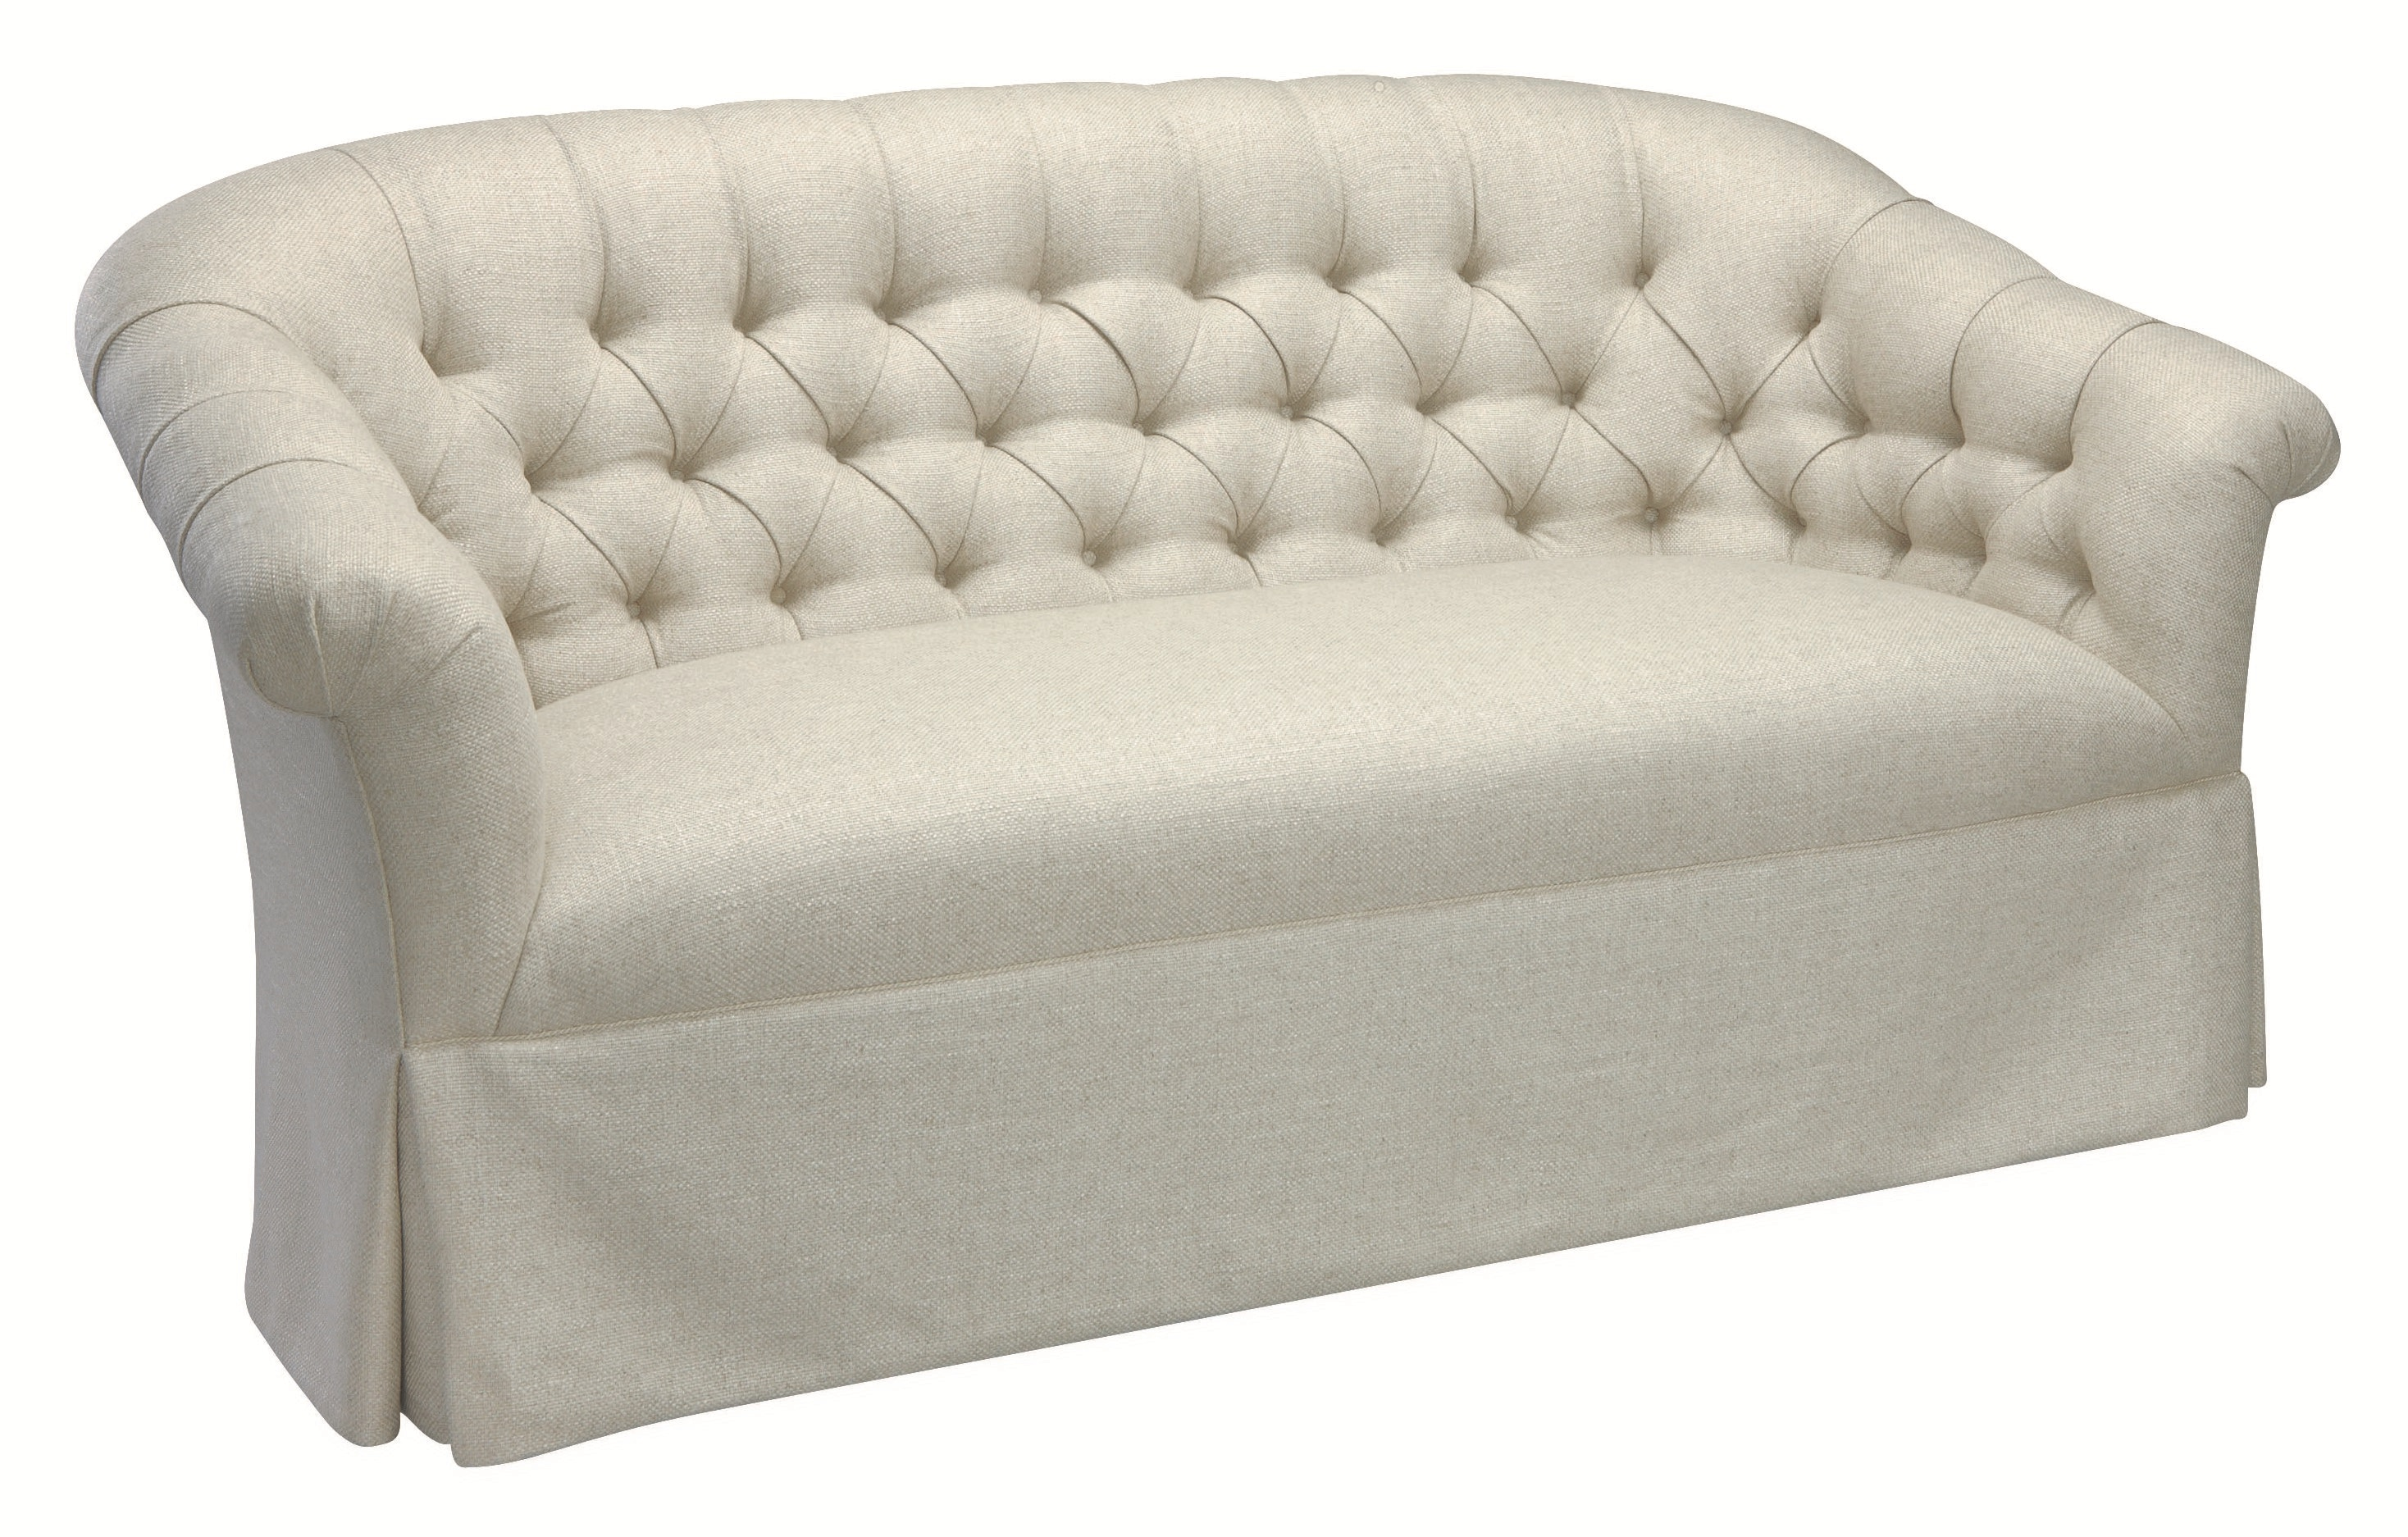 Lee Industries Loveseat 1331 02